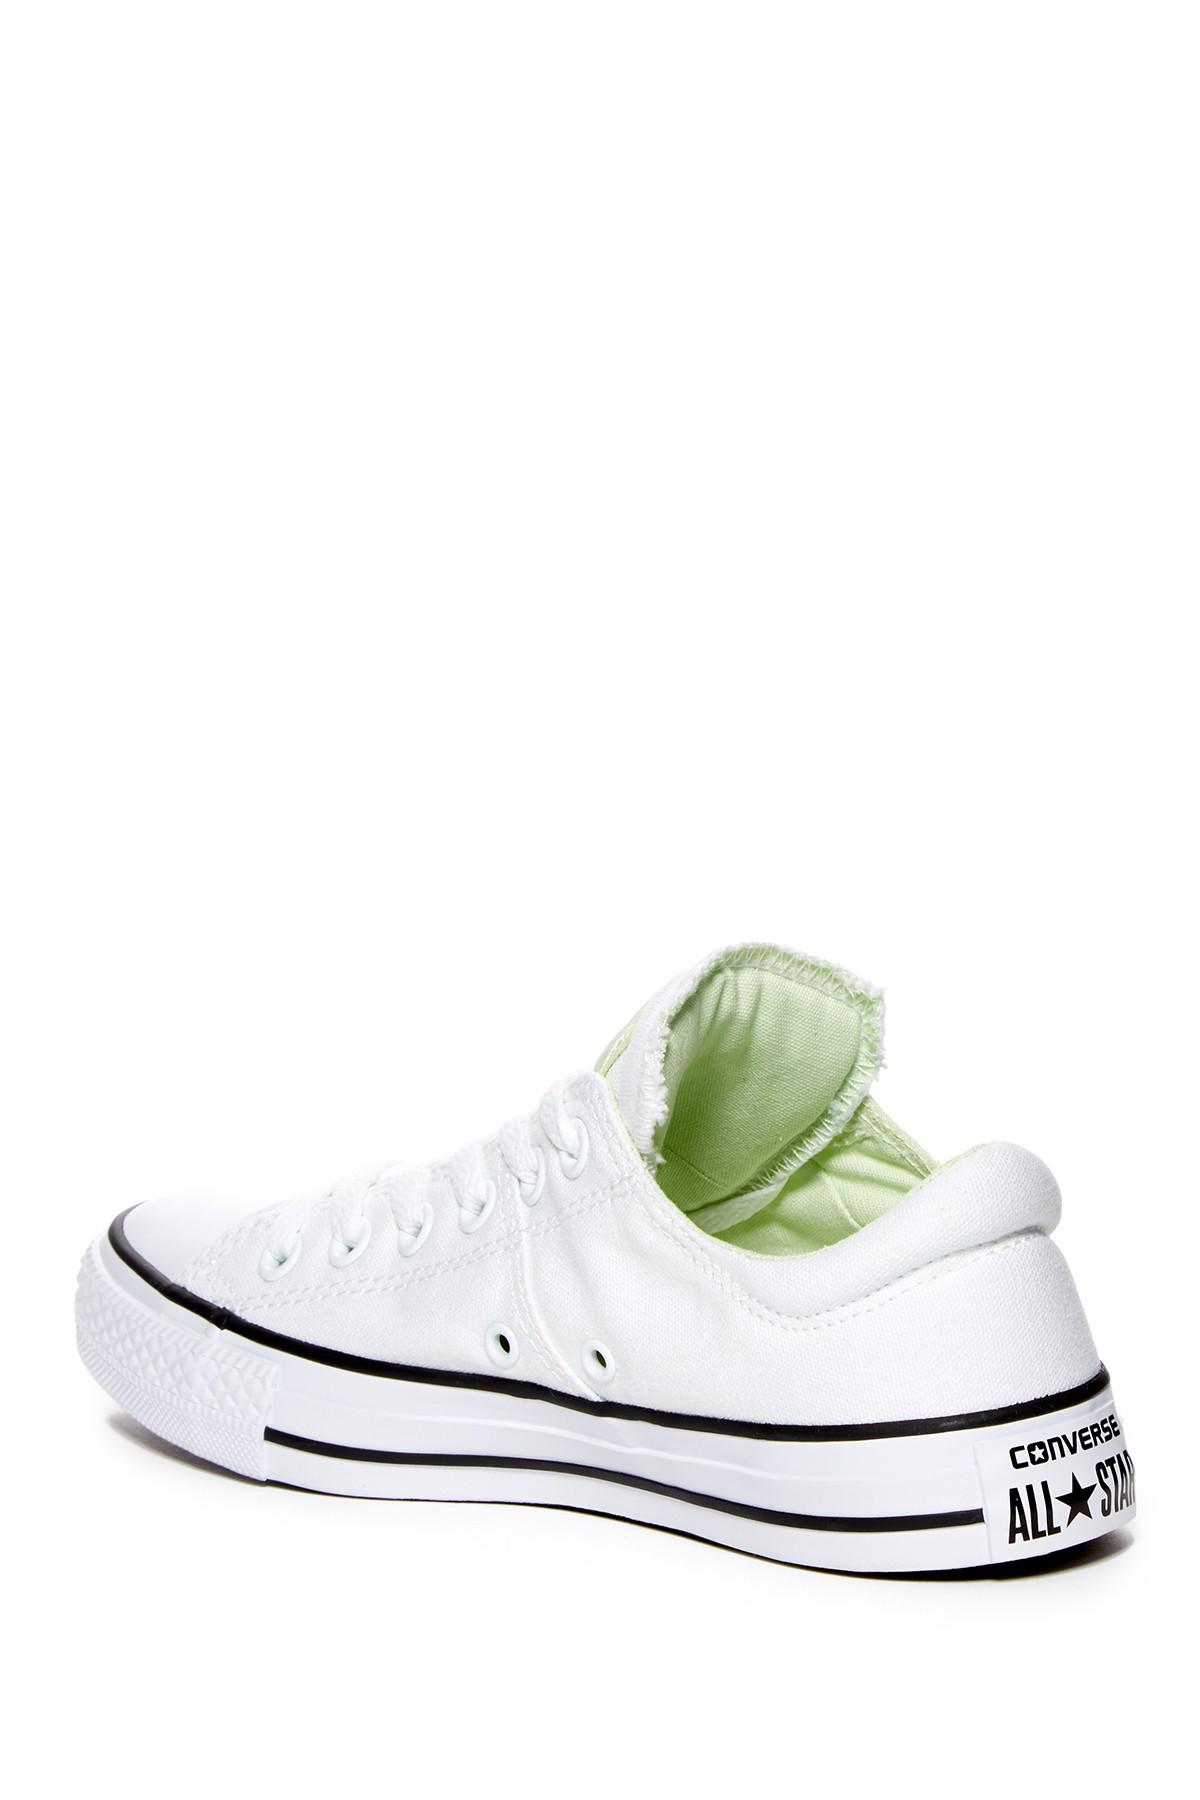 f77cc834931ef5 ... white us mens 8 0f674 a3fe2  sale lyst converse chuck taylorr all starr  madison low top sneaker 65af6 a7a83